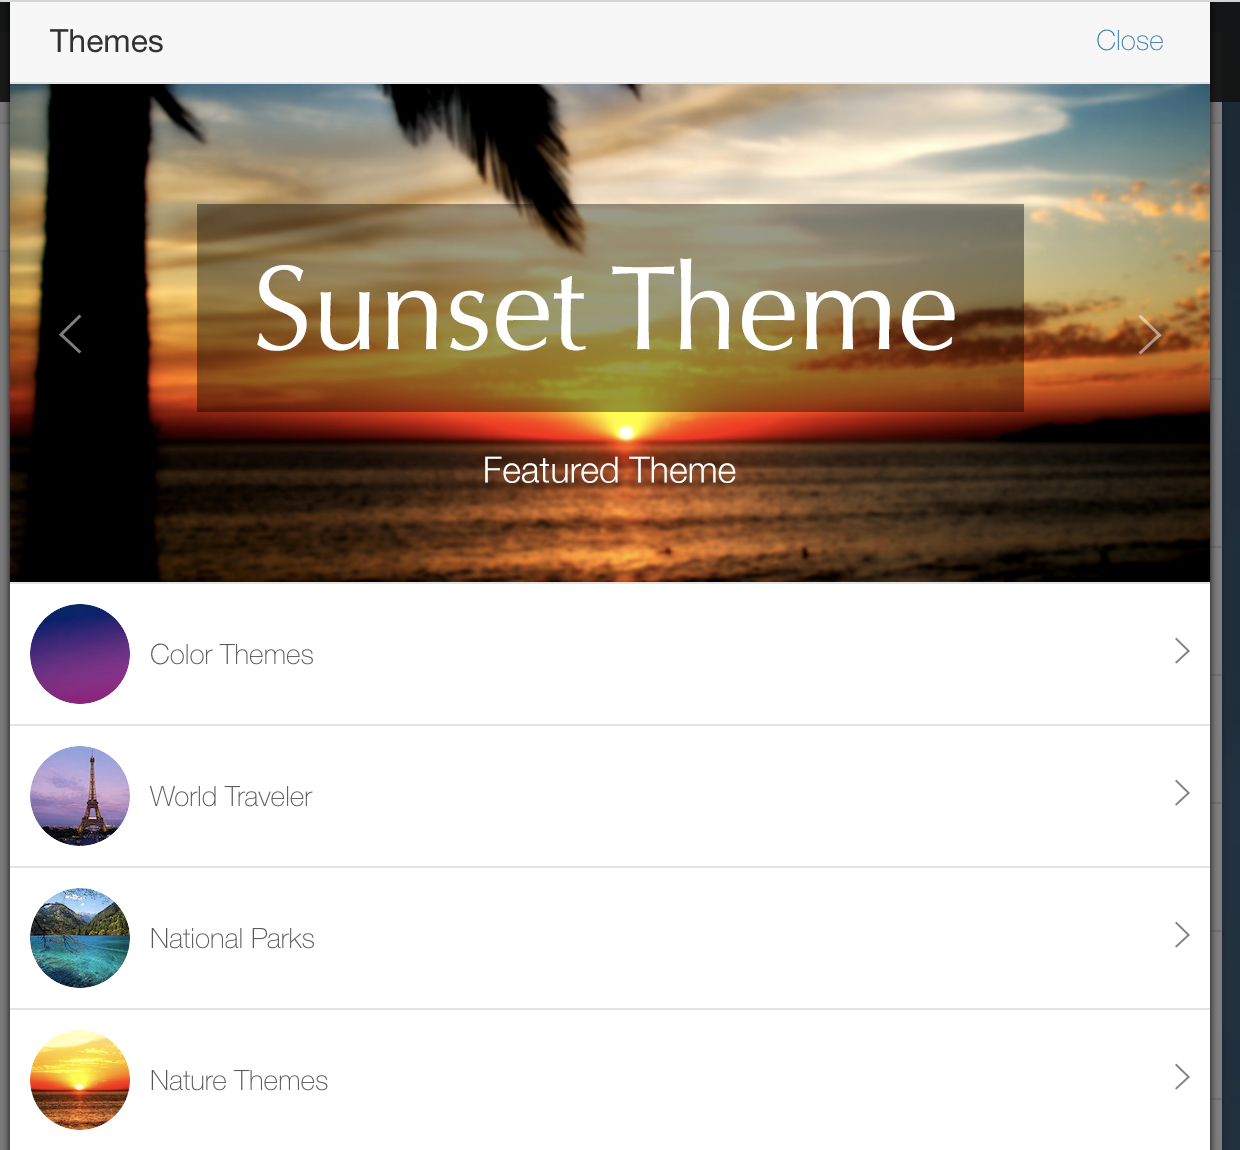 Image of themes area